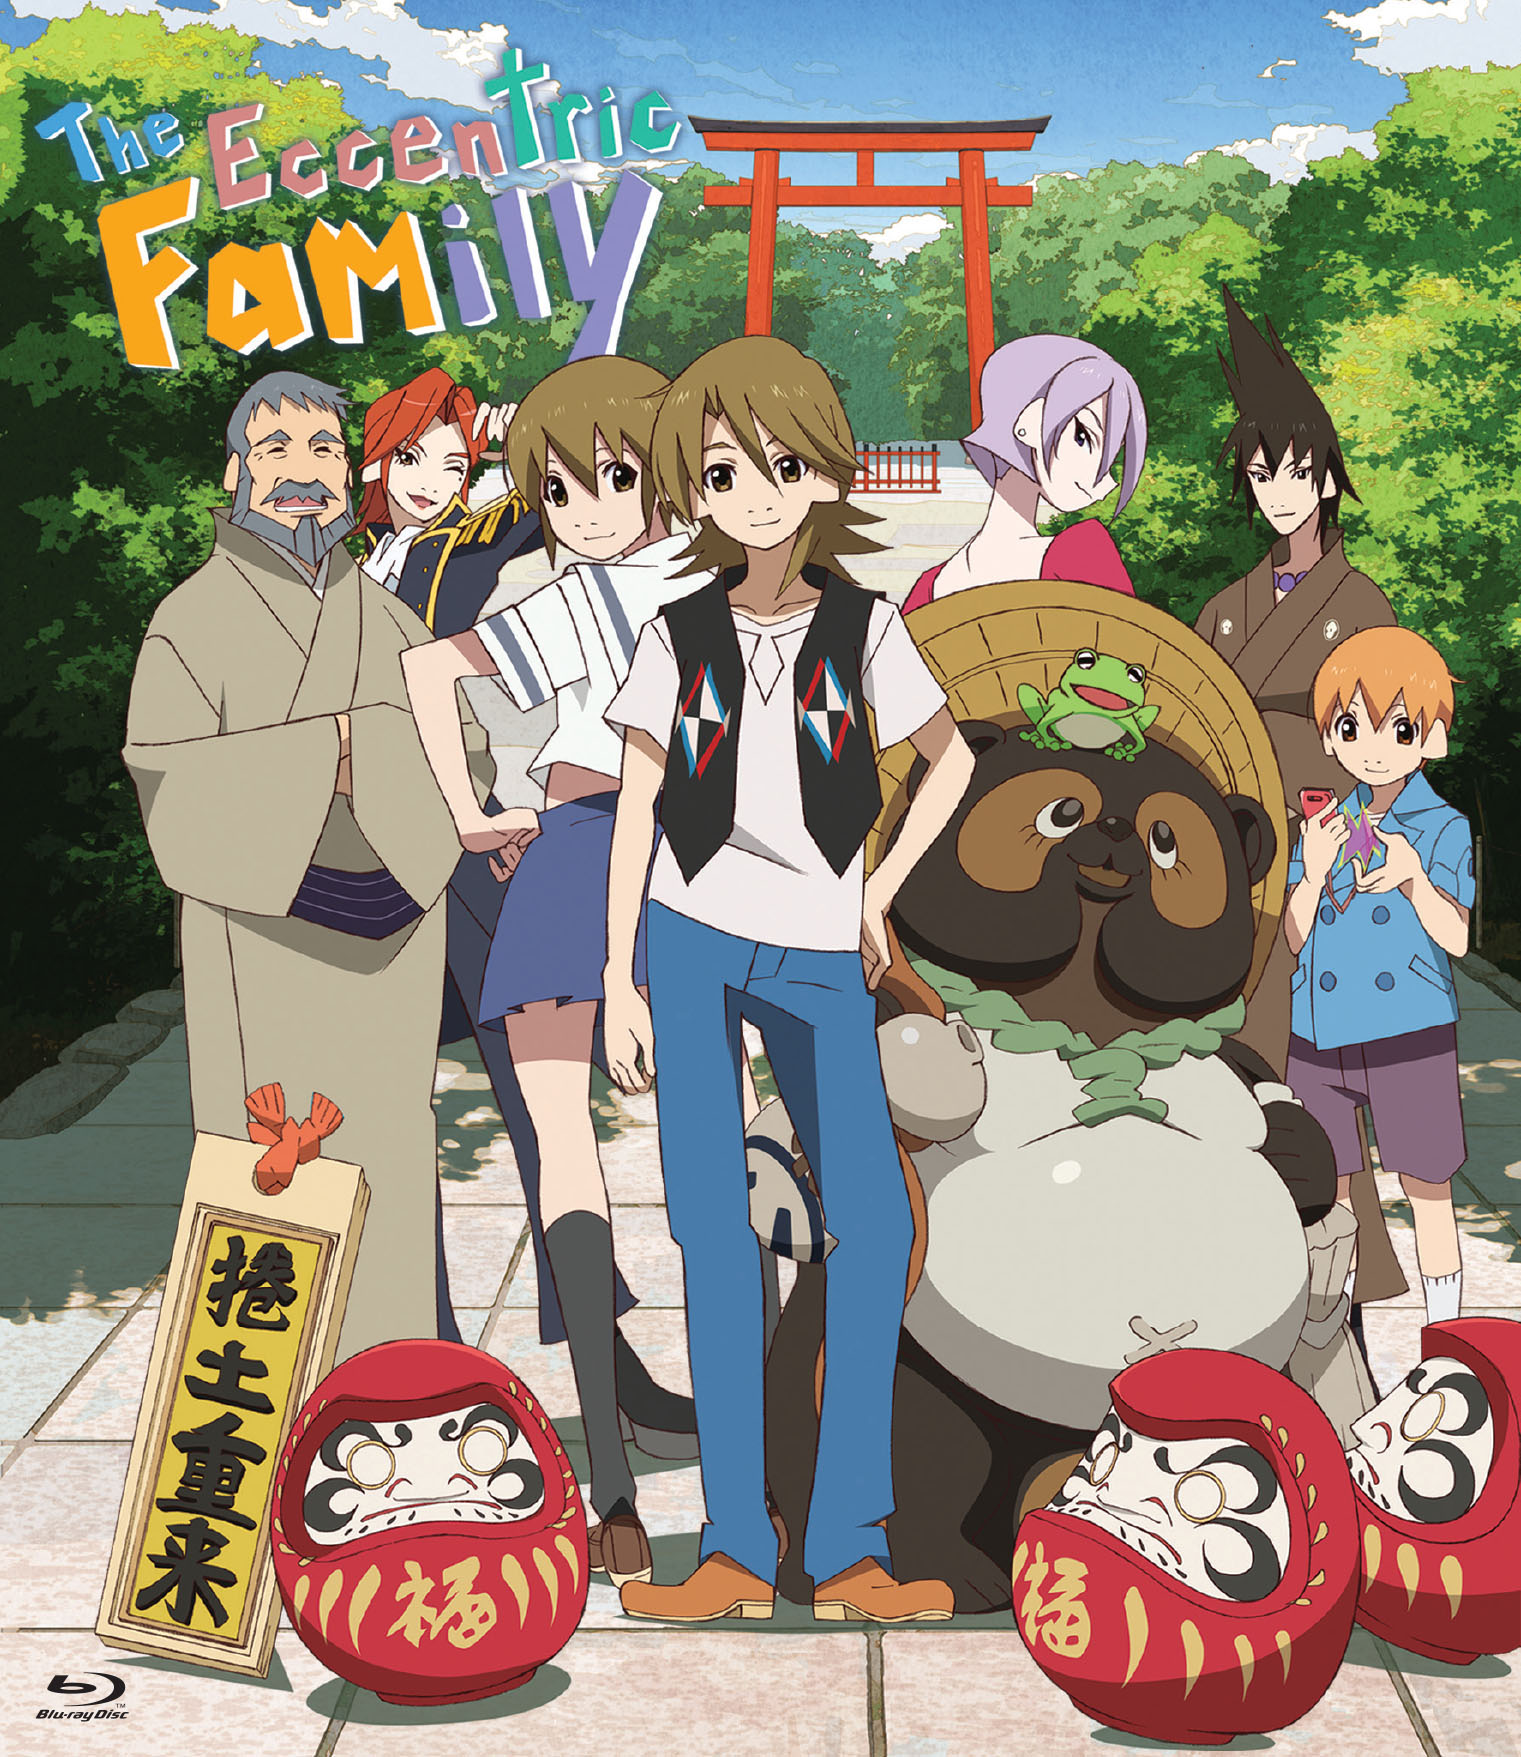 The Eccentric Family Blu-ray 813633017600